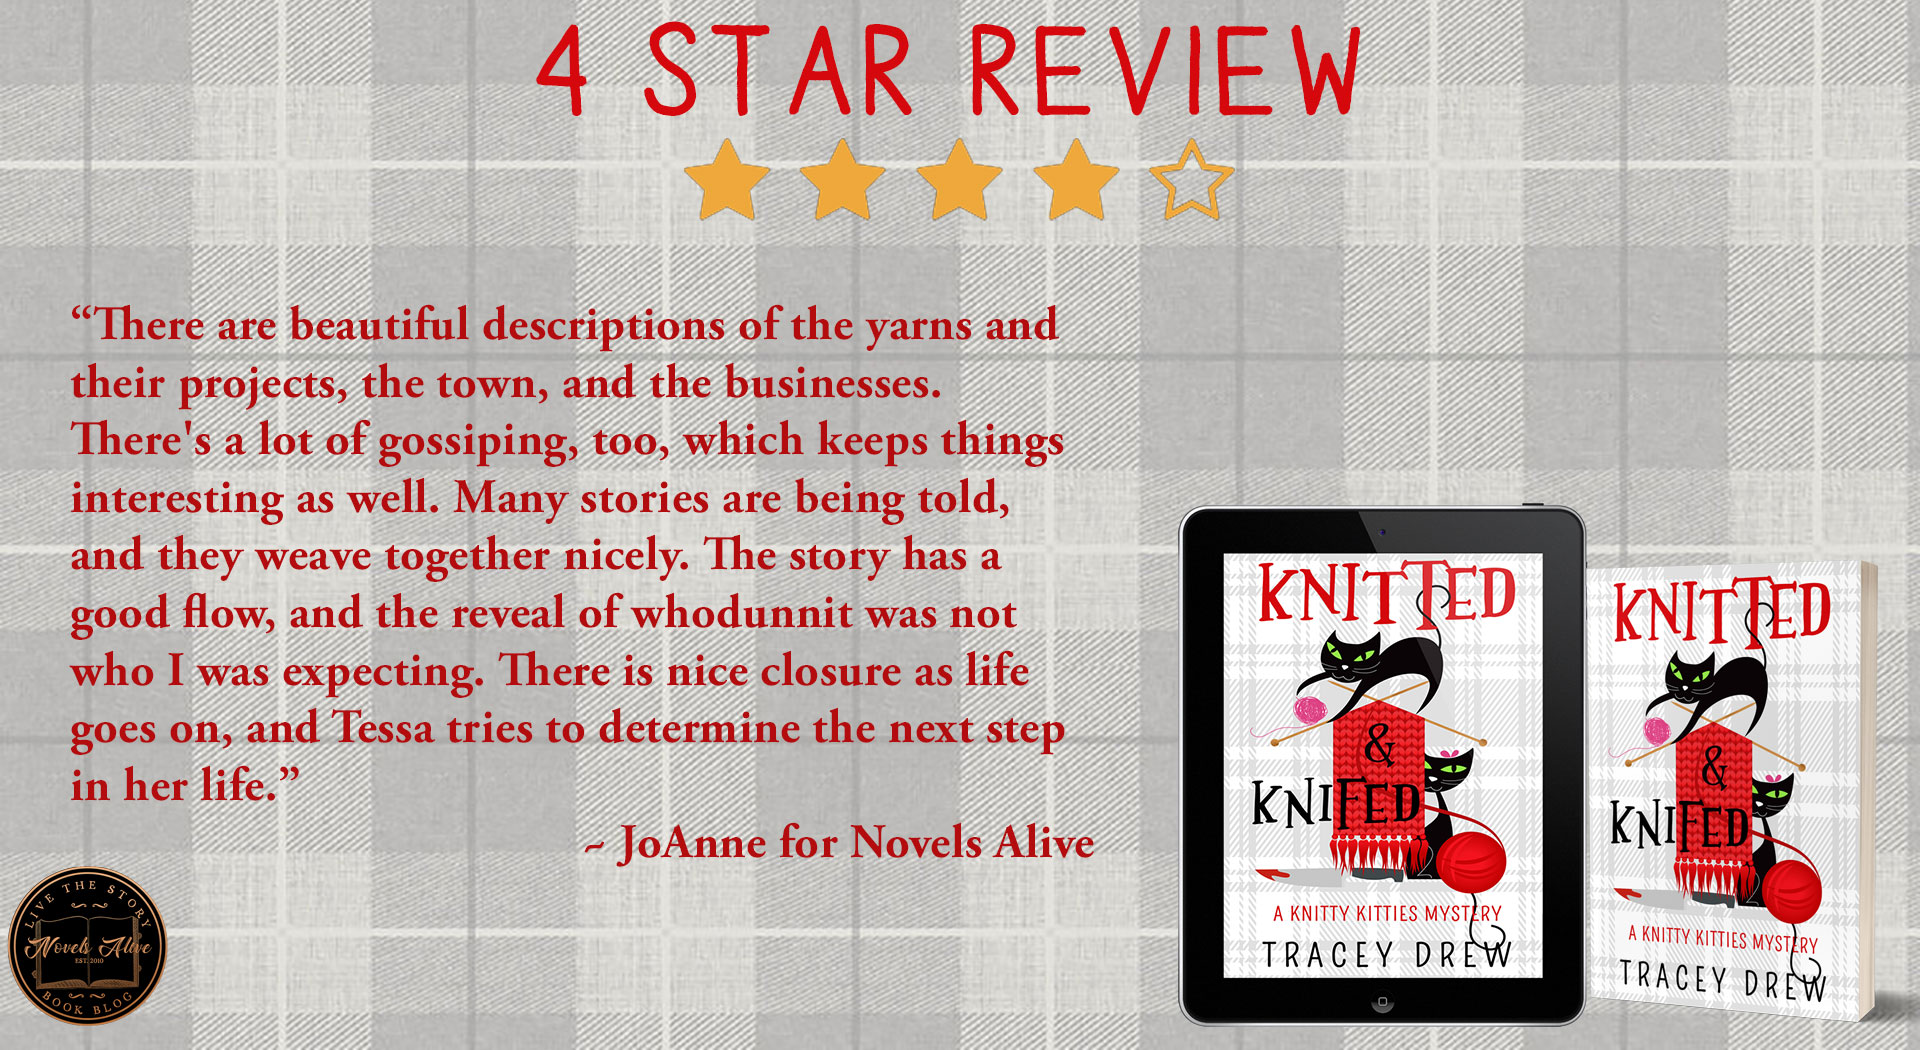 KnittedandKnifed-REVIEW-FB